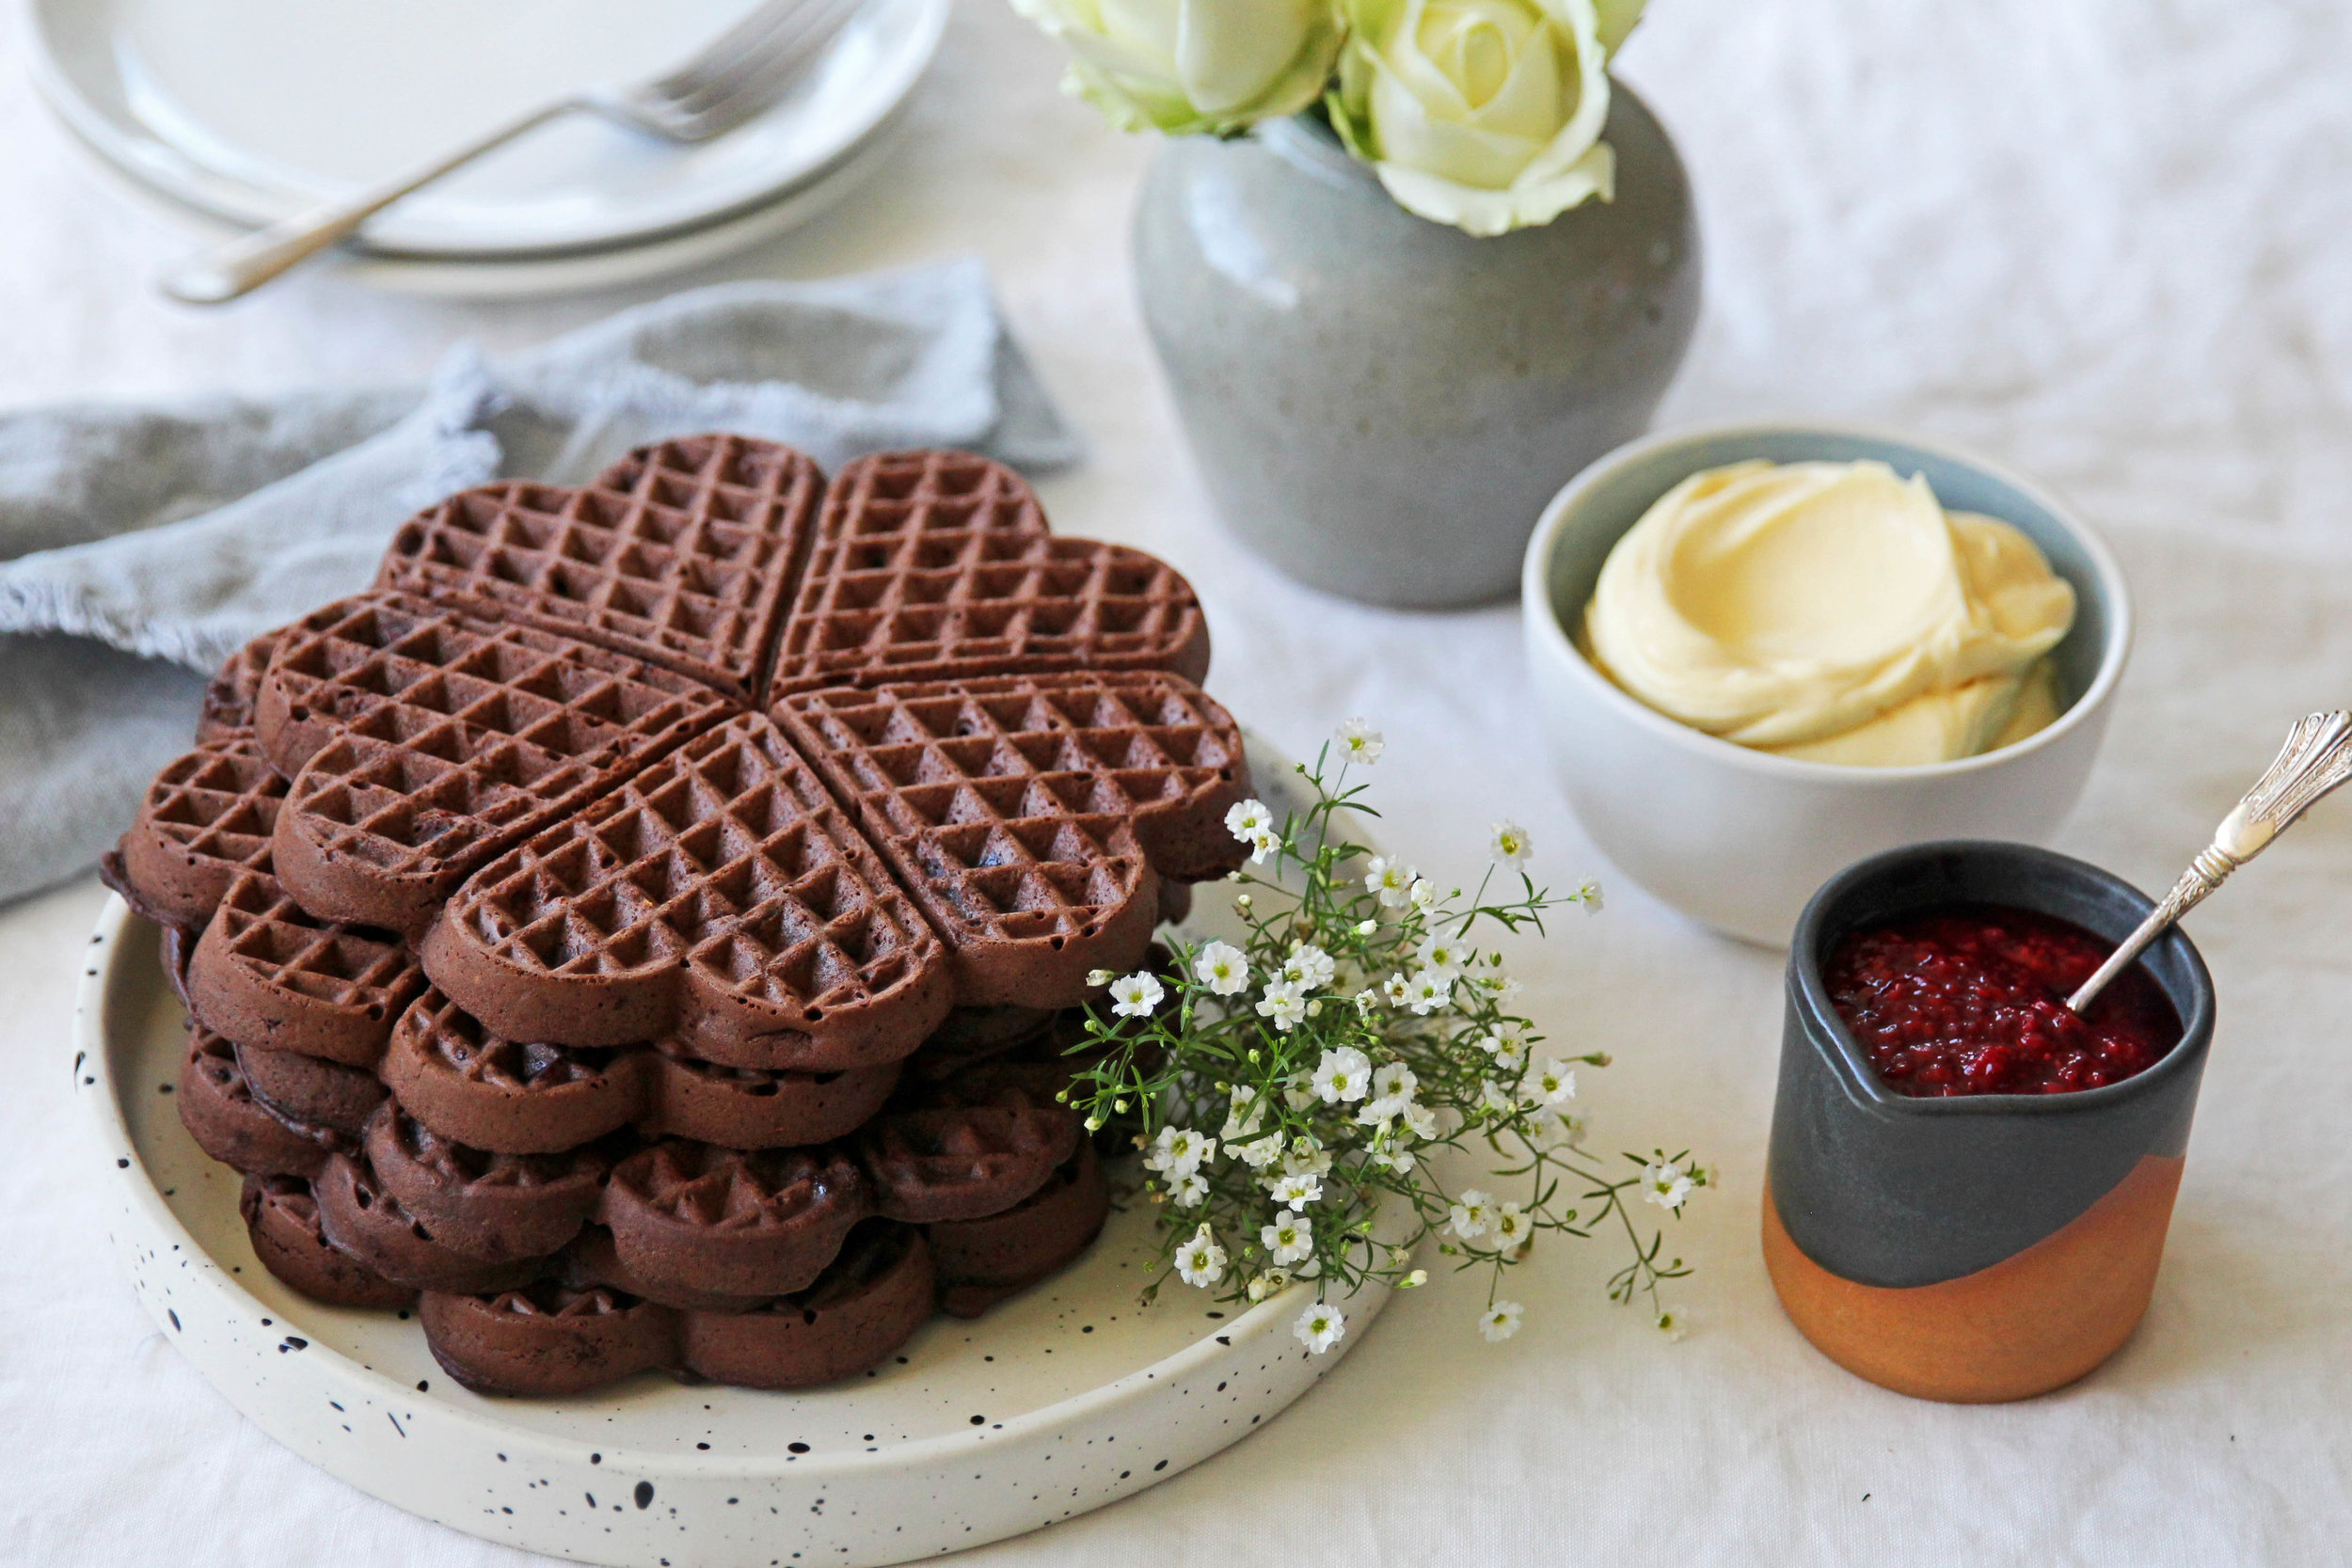 NAUTILUS_Mothers Day Brunch_Low Res_Chocolate waffles1.jpg